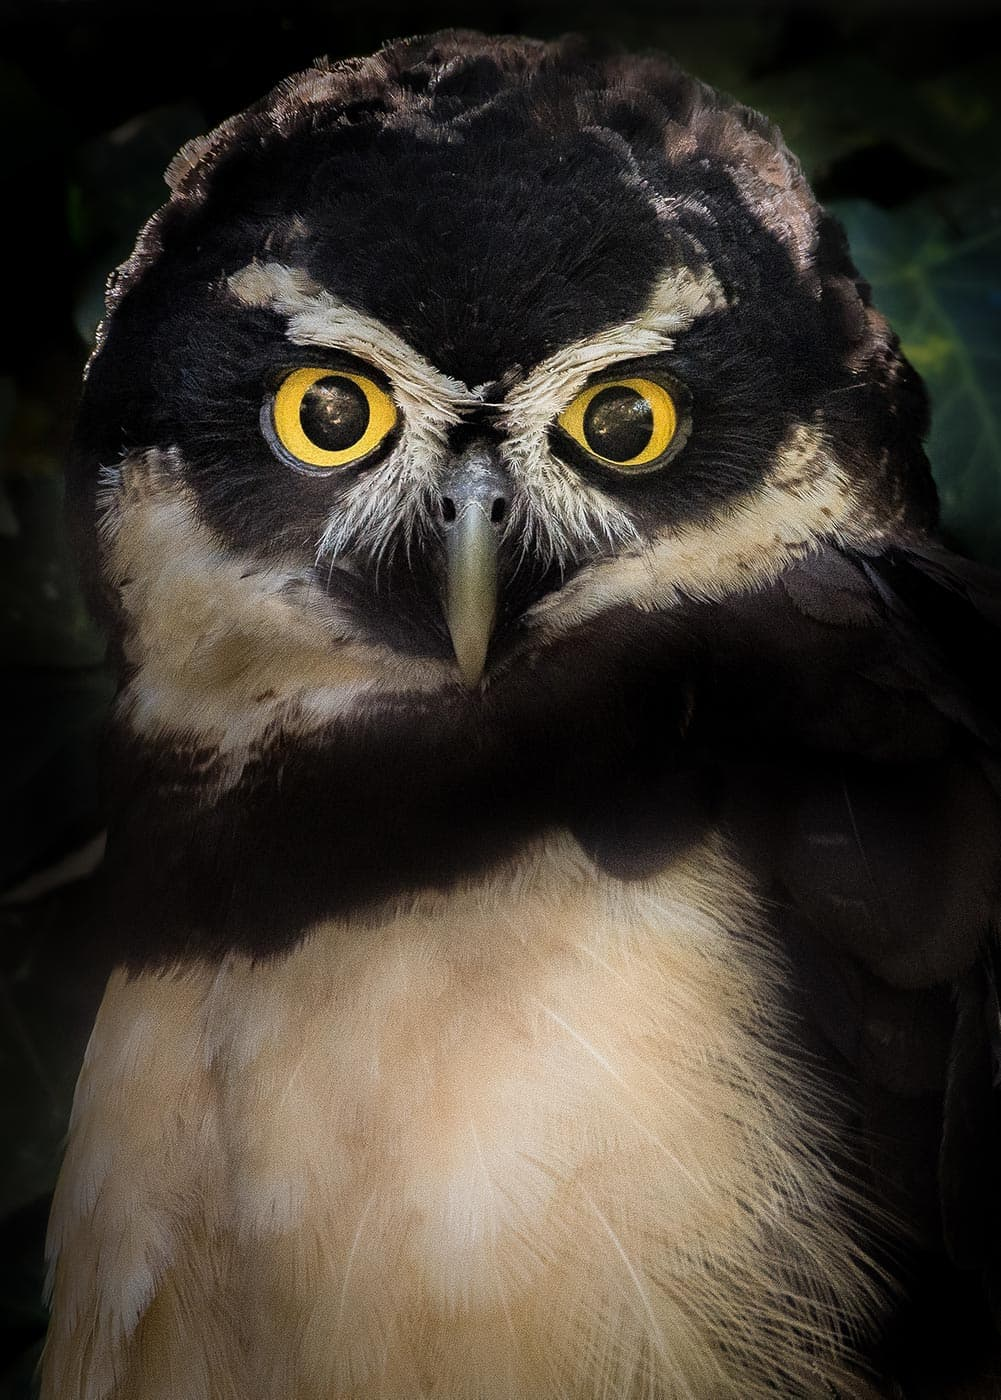 Spectacled owl with yellow eyes